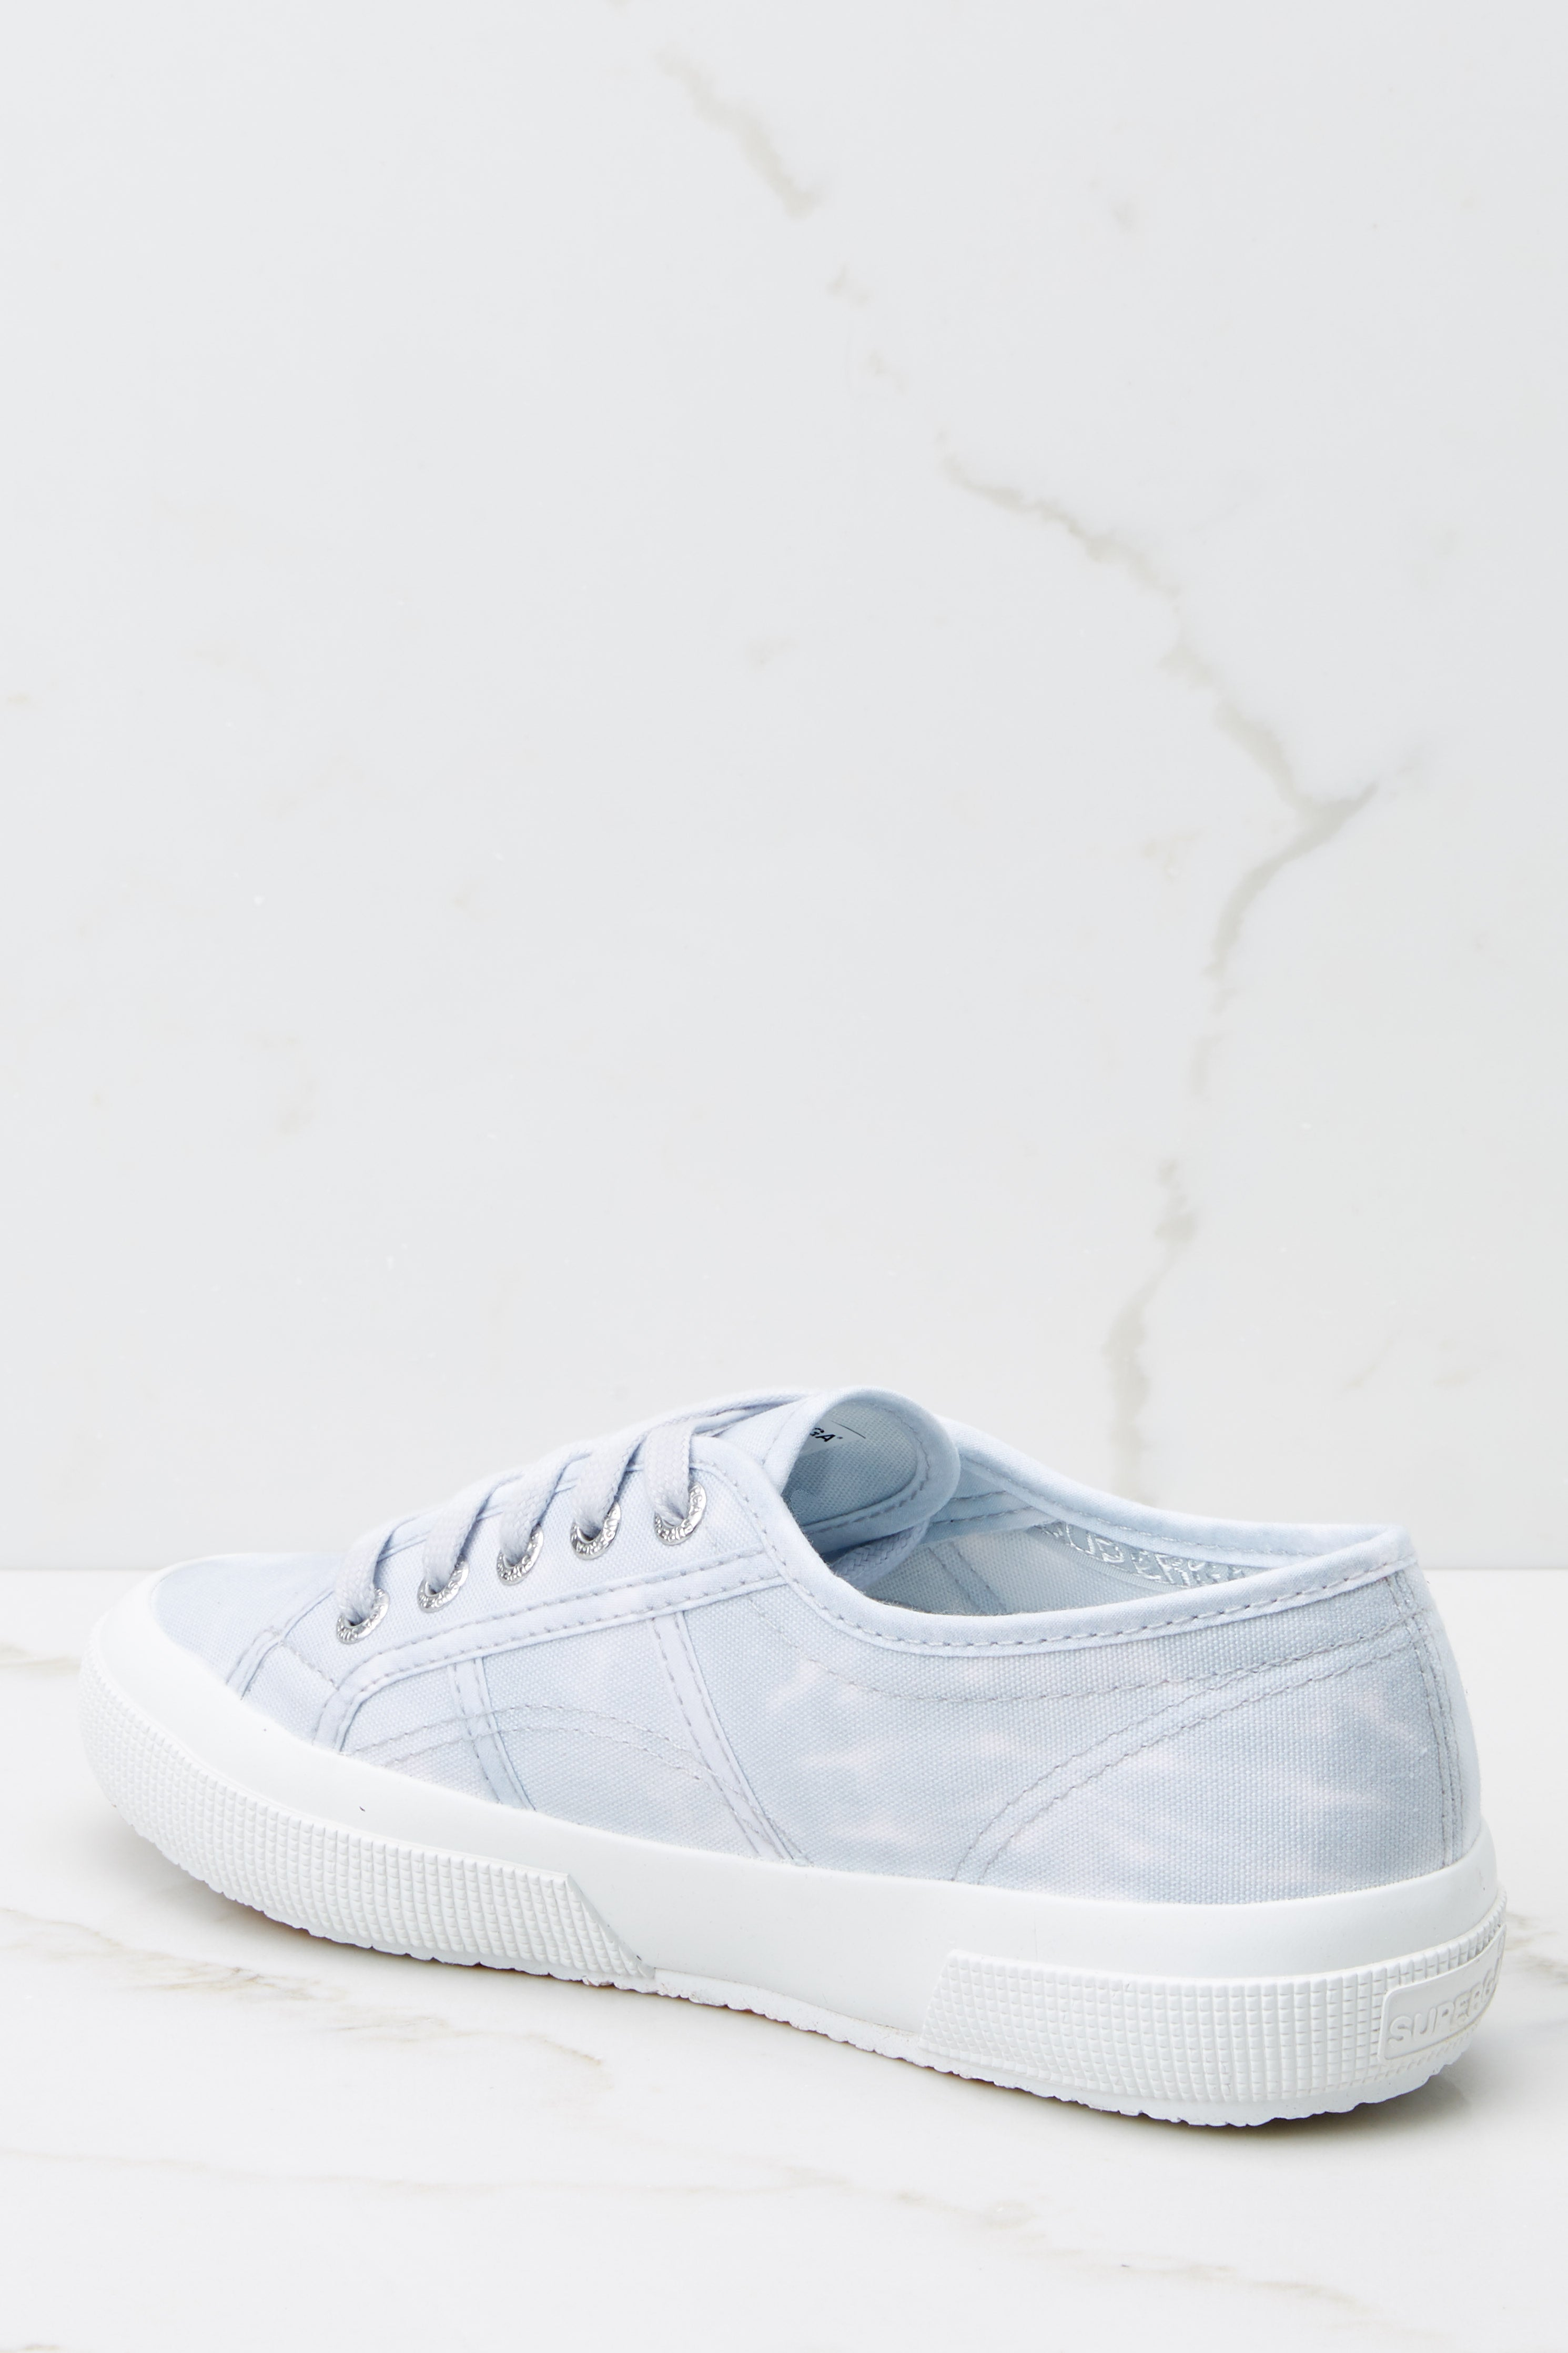 5 2750 Fantasy Cotu Blue Tie Dye Sneakers at reddress.com